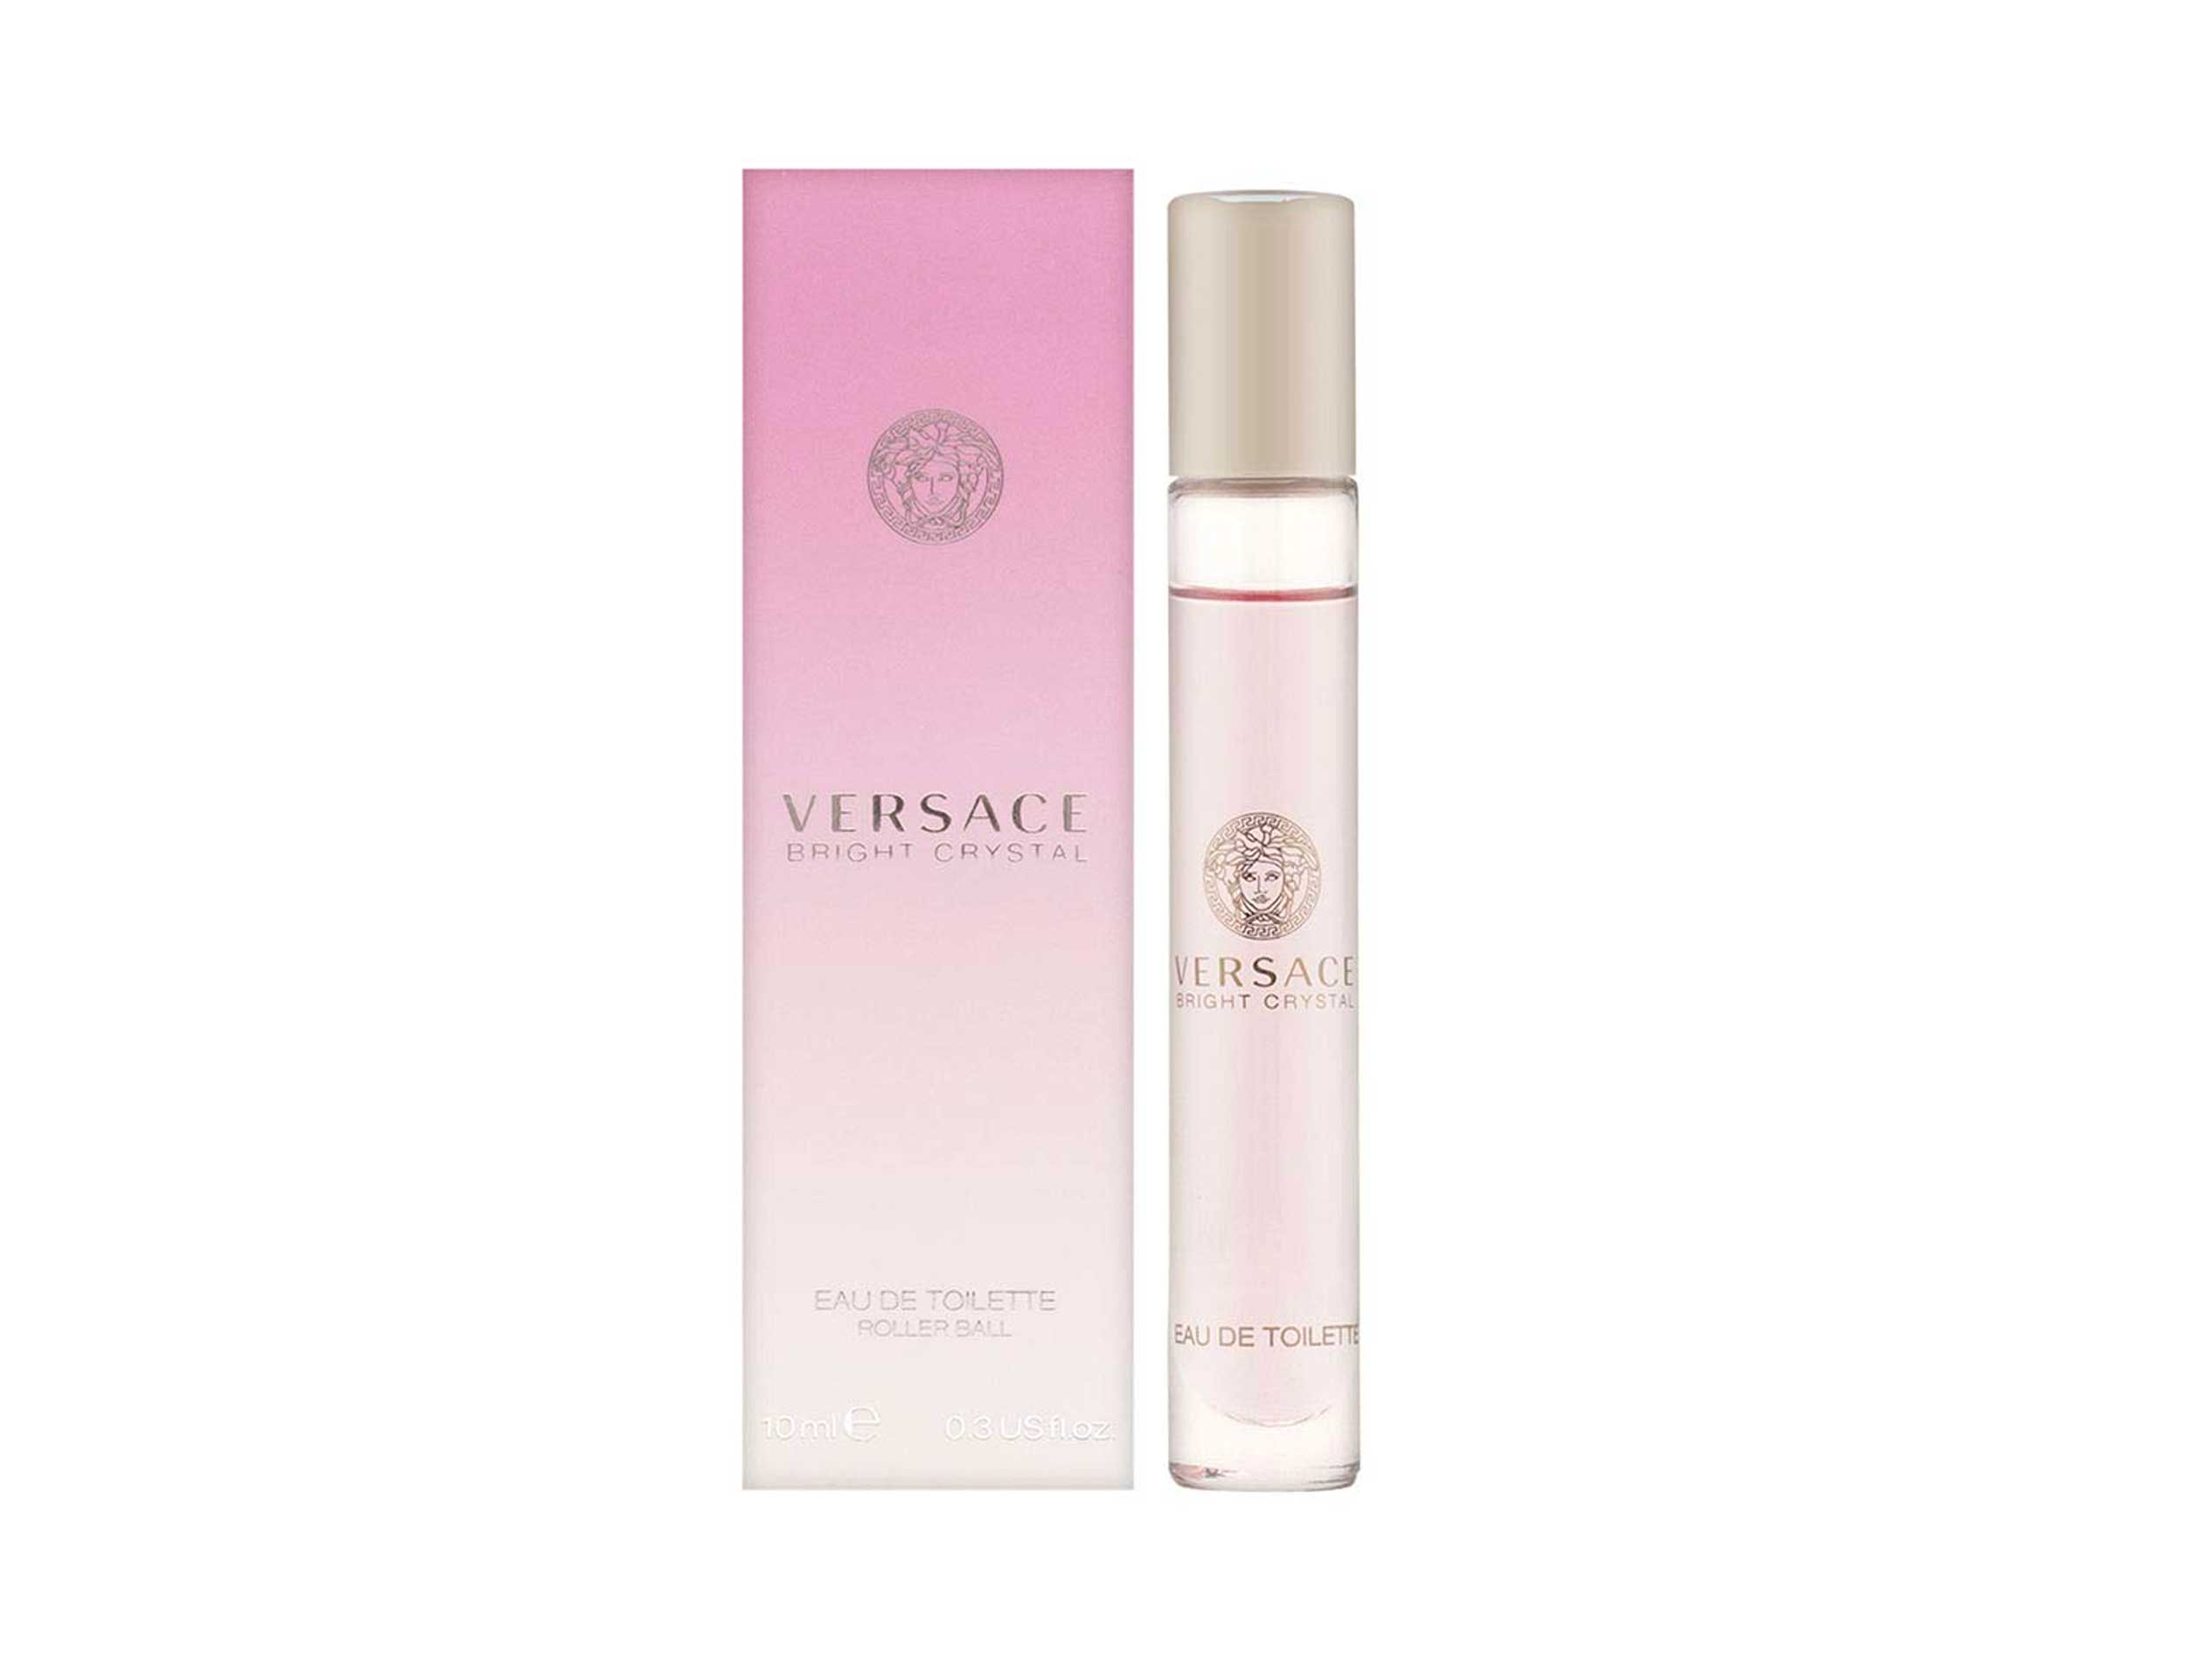 Versace Bright Crystal by Gianni Versace Eau De Toilette Rollerball for Women, .3 Ounce